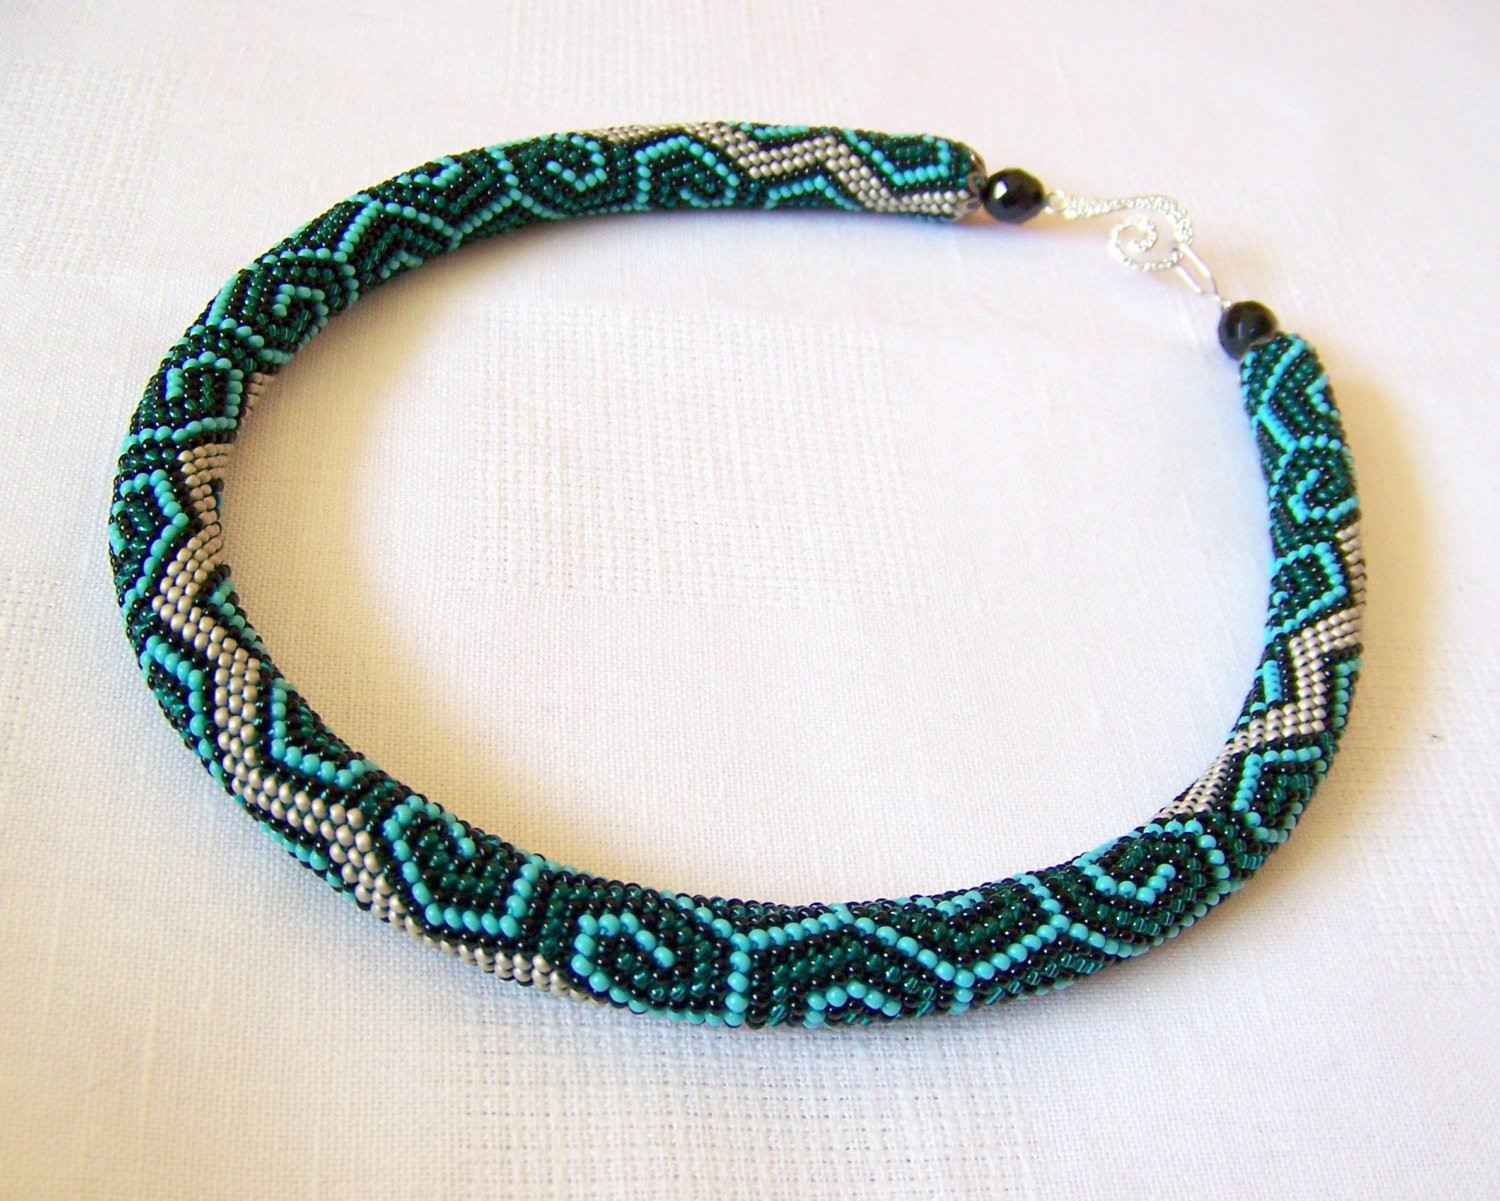 Crochet Beads Fresh Bead Crochet Necklace with Geometric Pattern Beaded Rope Of Awesome 41 Ideas Crochet Beads